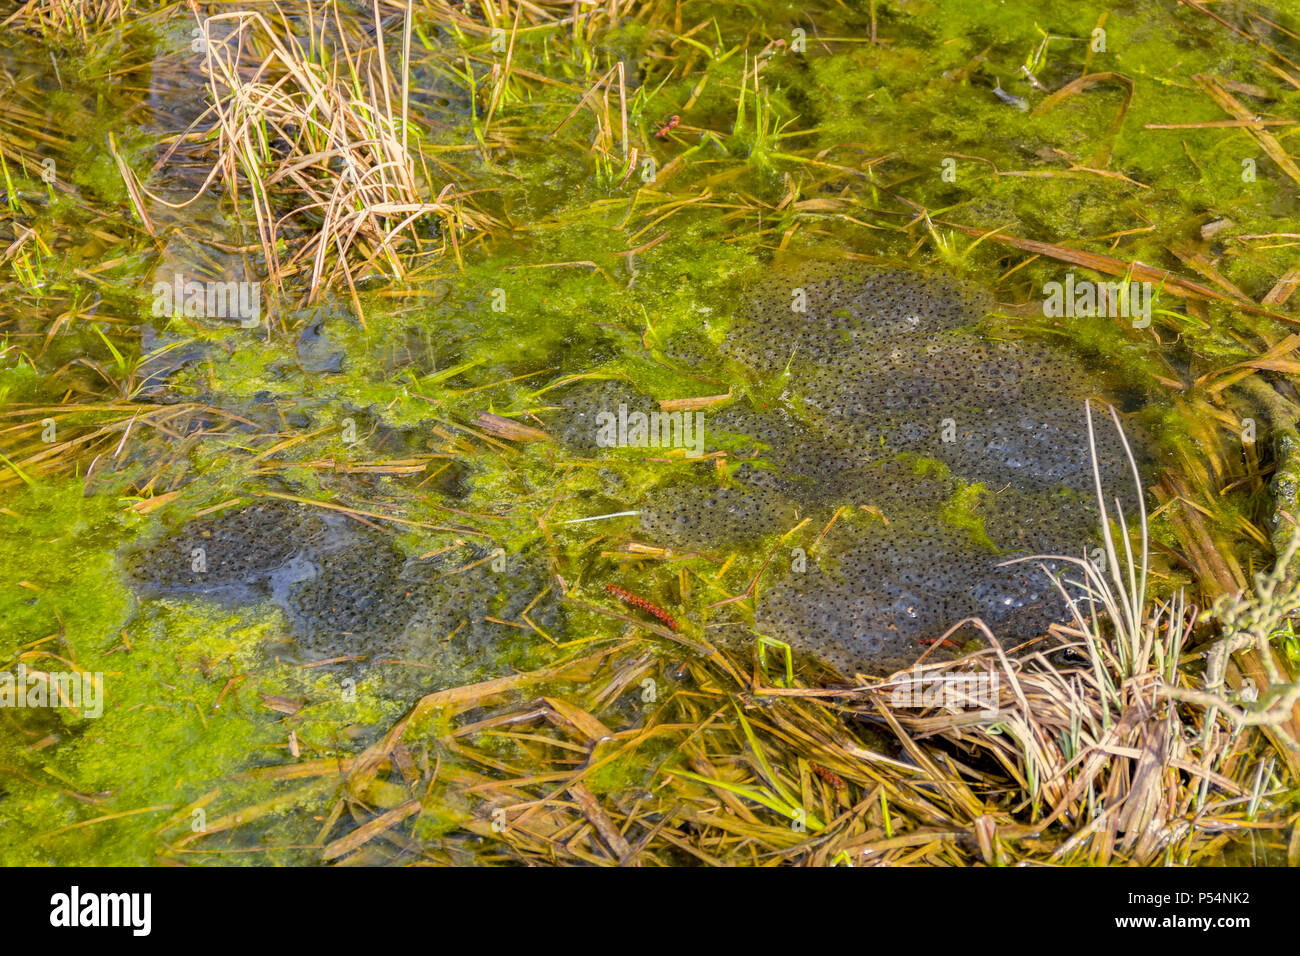 lots of frog spawn clusters at early spring time in natural ambiance - Stock Image